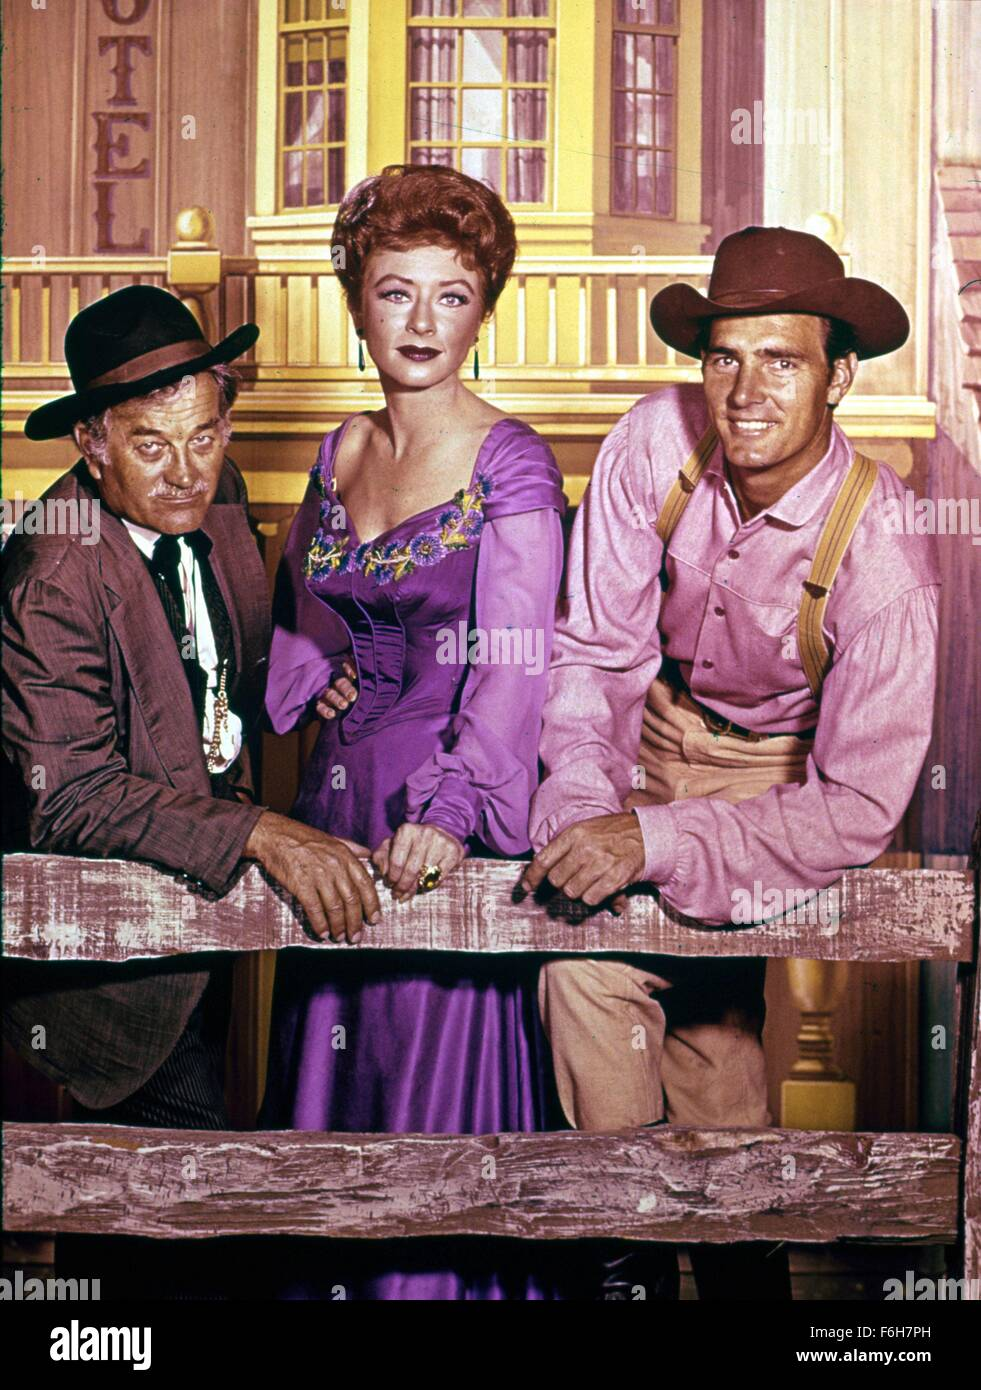 Gunsmoke Tv Stock Photos & Gunsmoke Tv Stock Images - Alamy